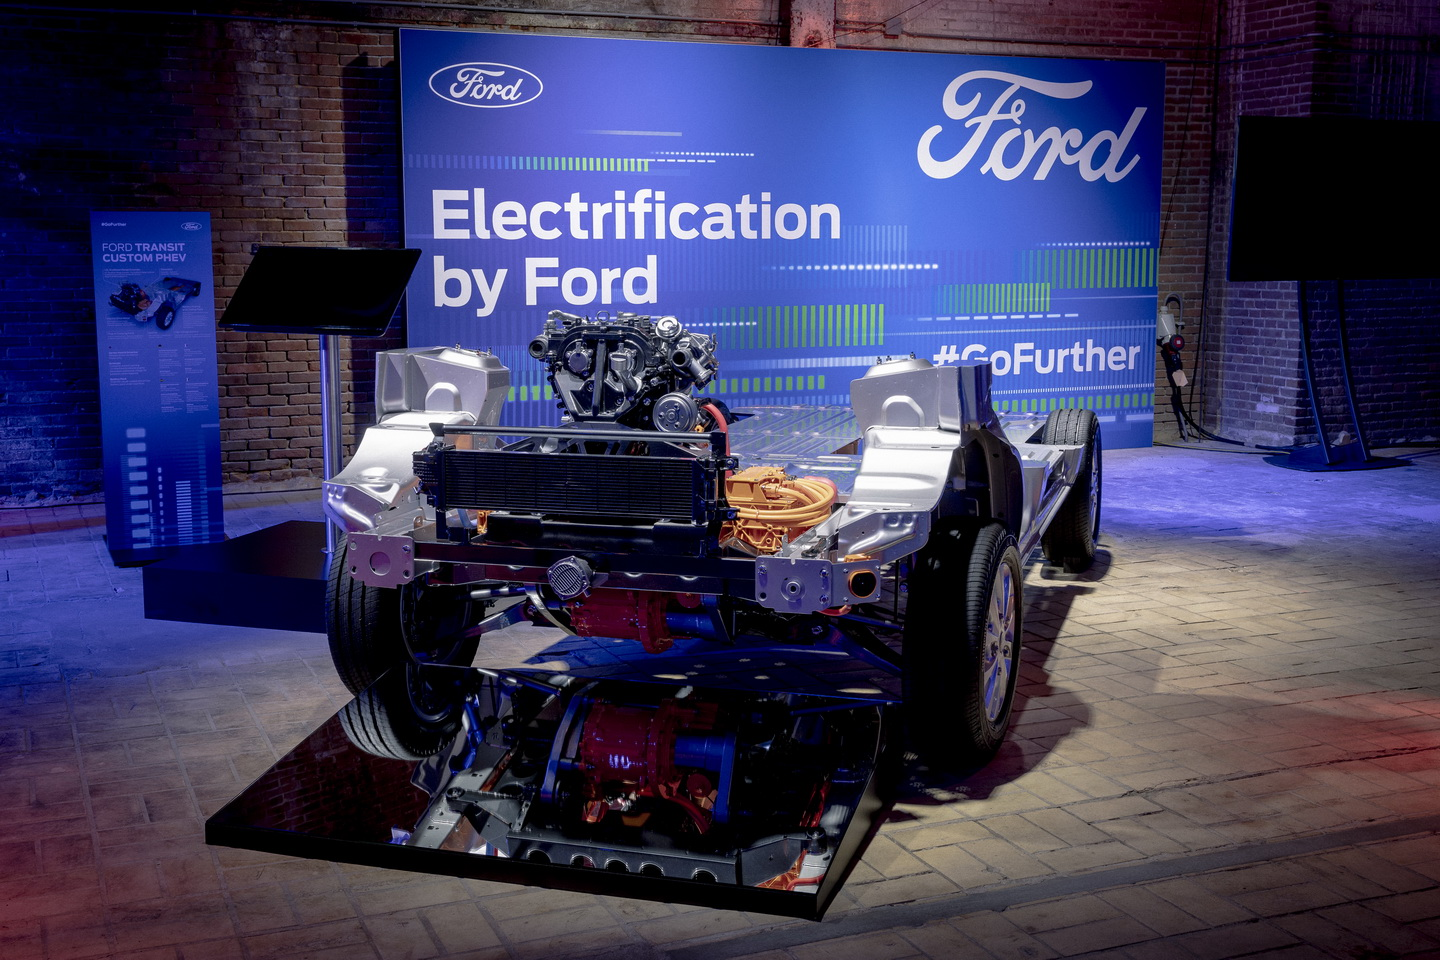 Ford Go Further 2019 event hybrid cars 119